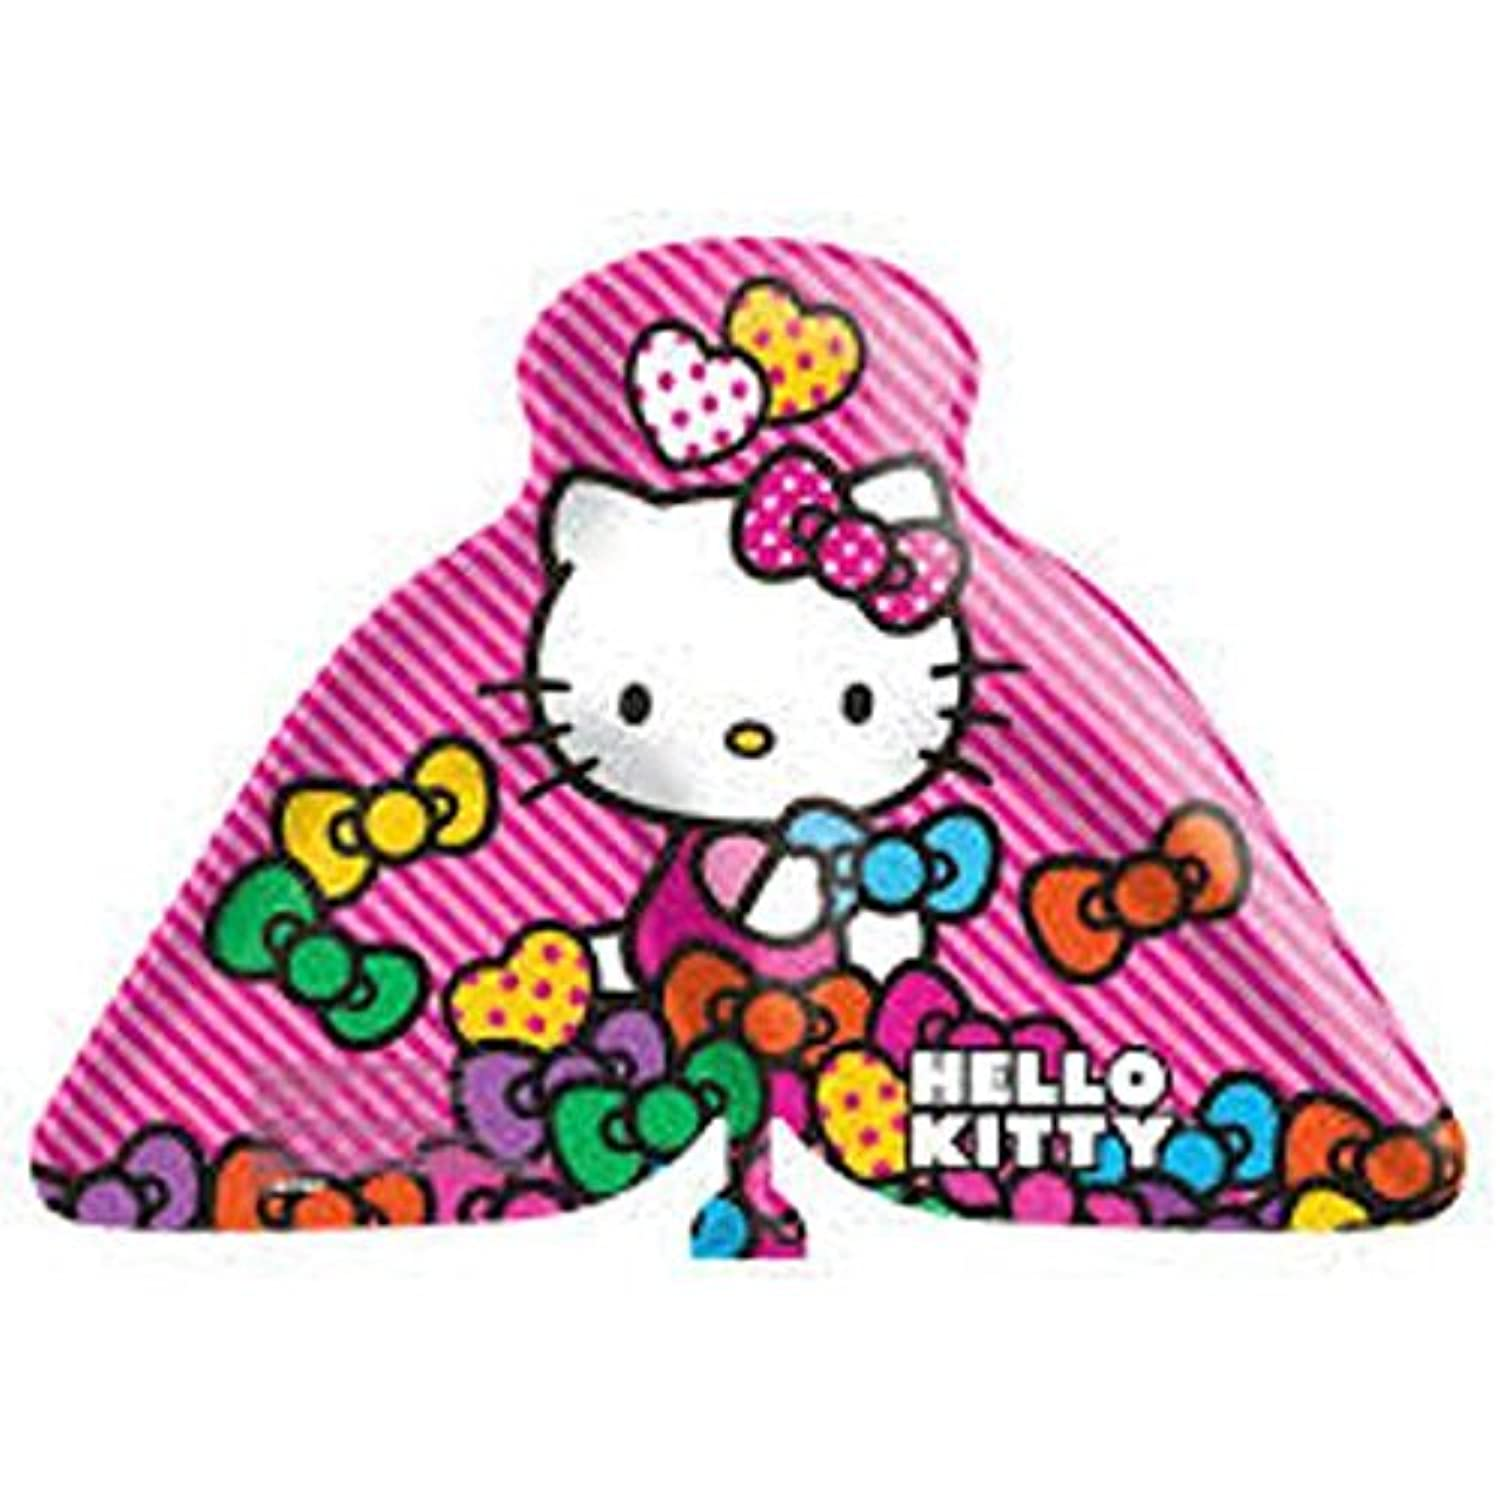 Hello Kitty Inflatable Poly Kite 33インチby x-kites